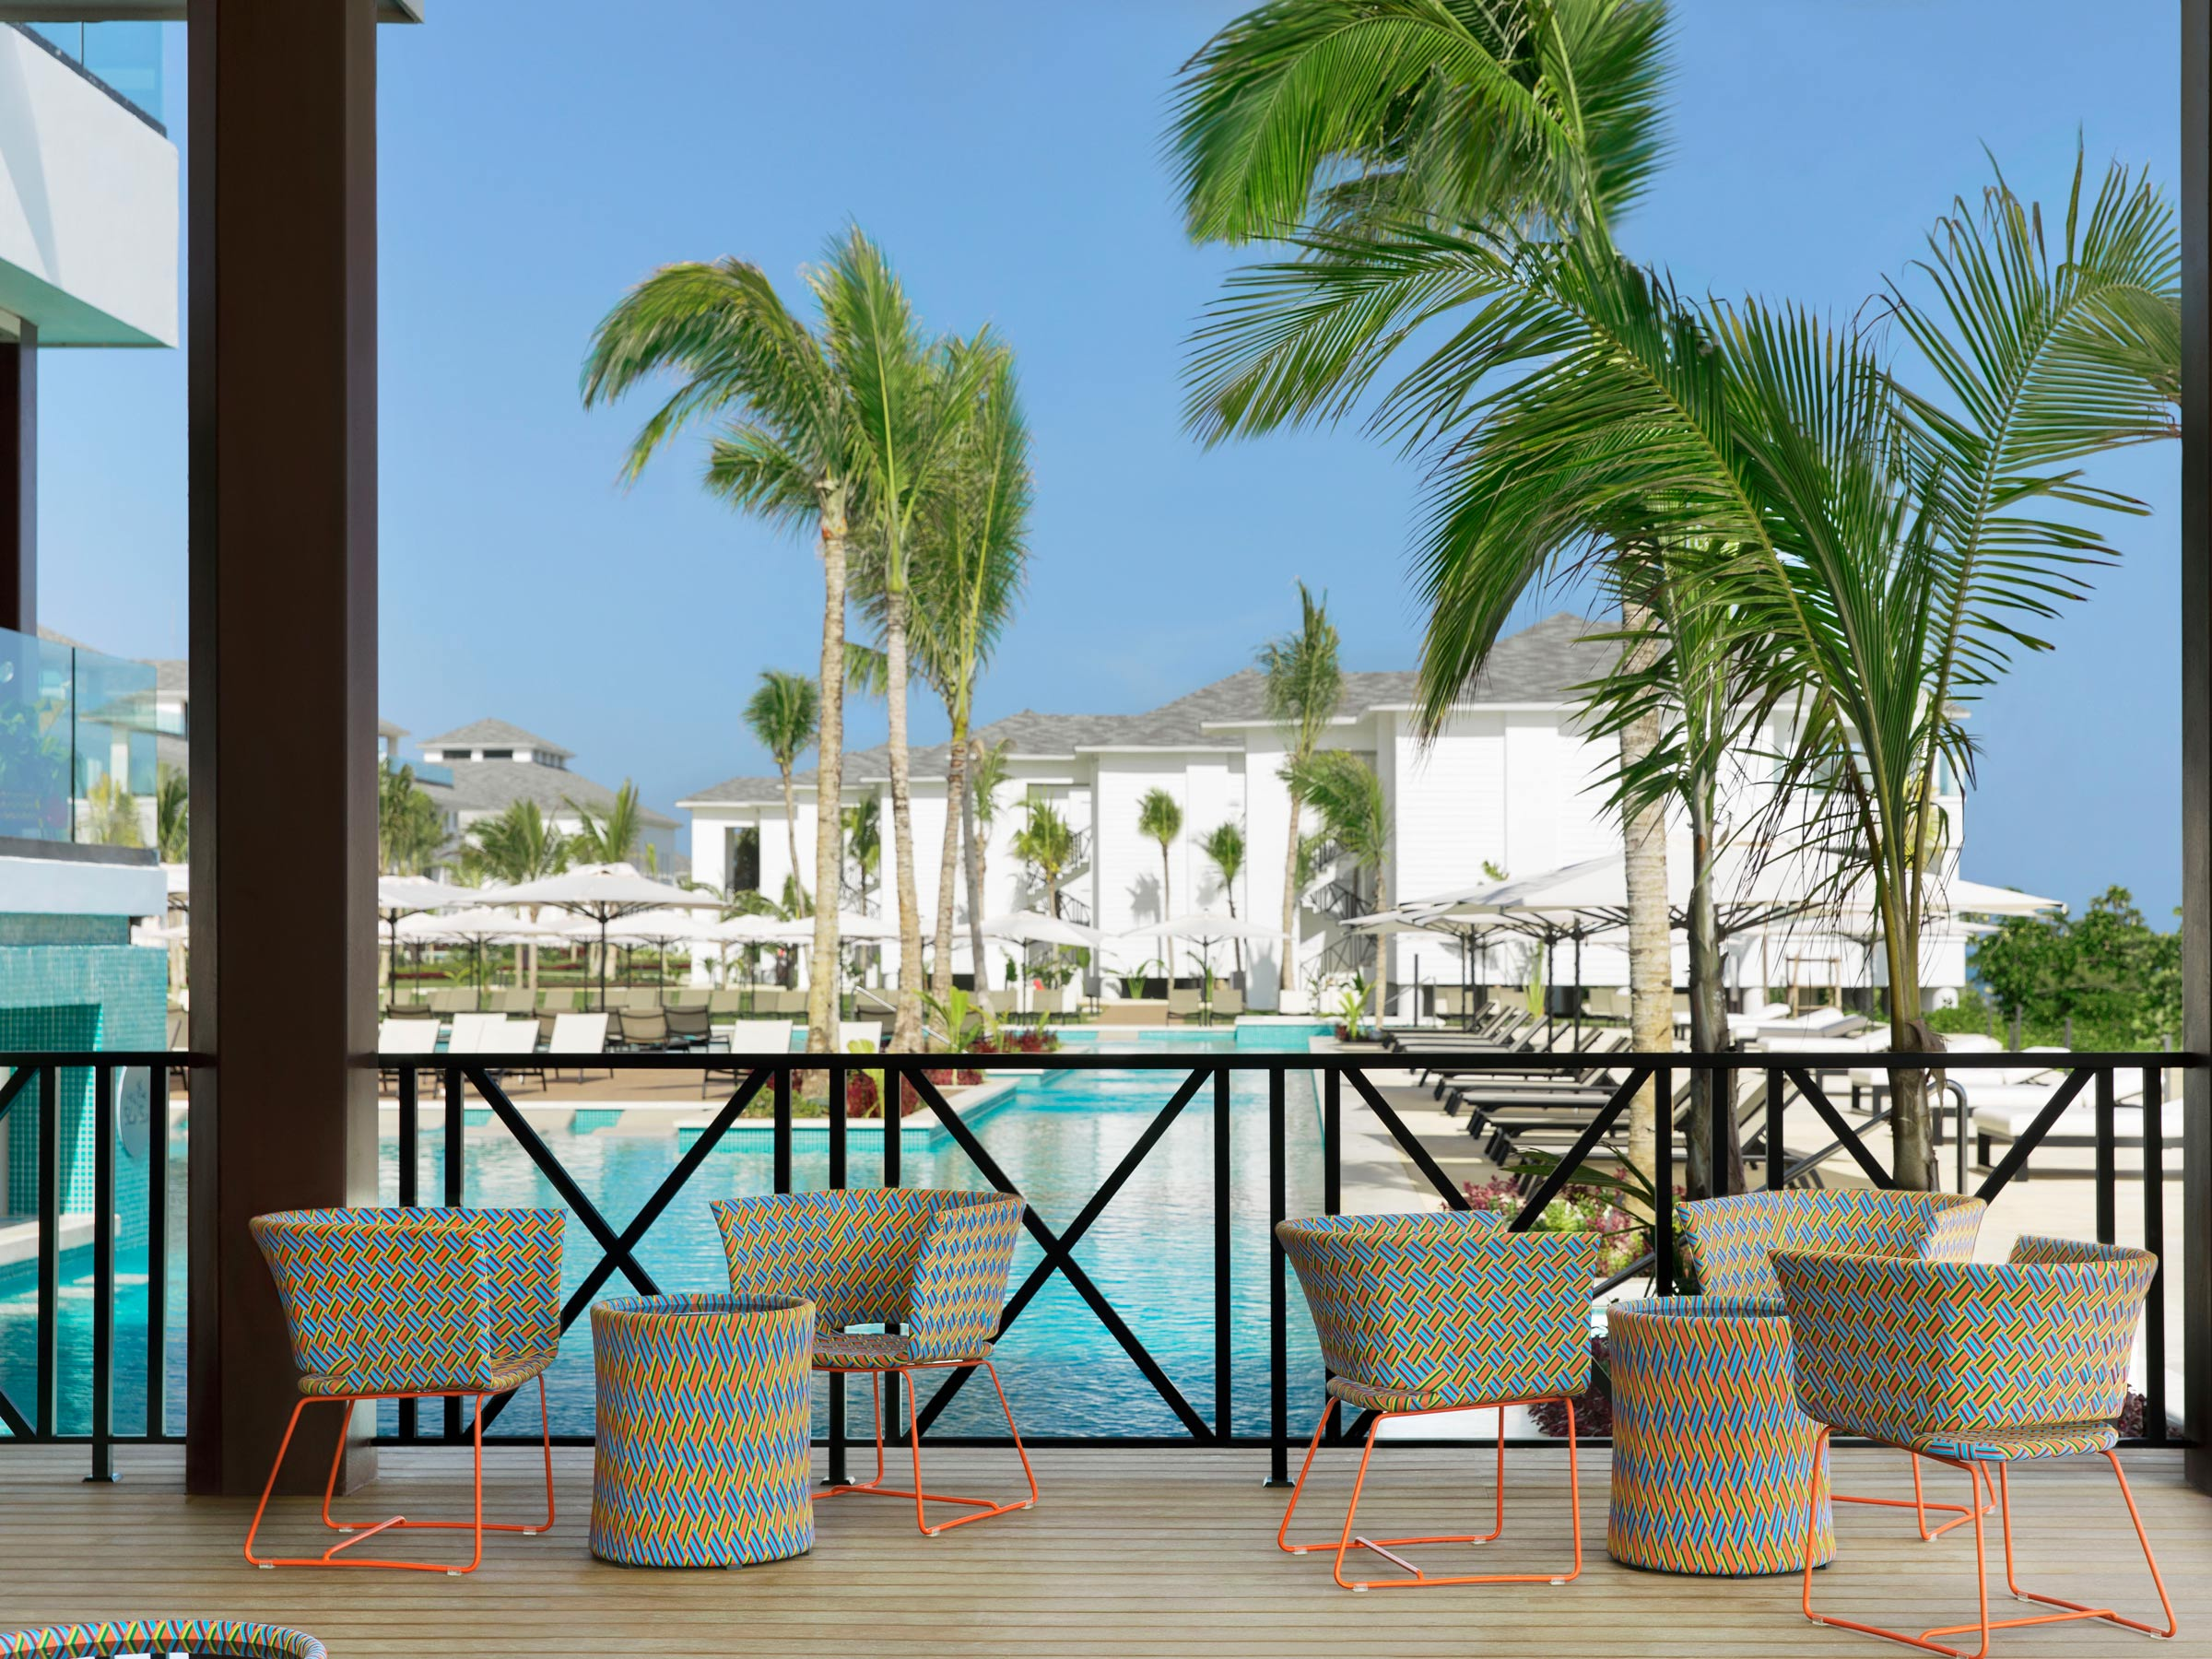 Grab a Drink at this Pool Bar at Excellence Oyster Bay